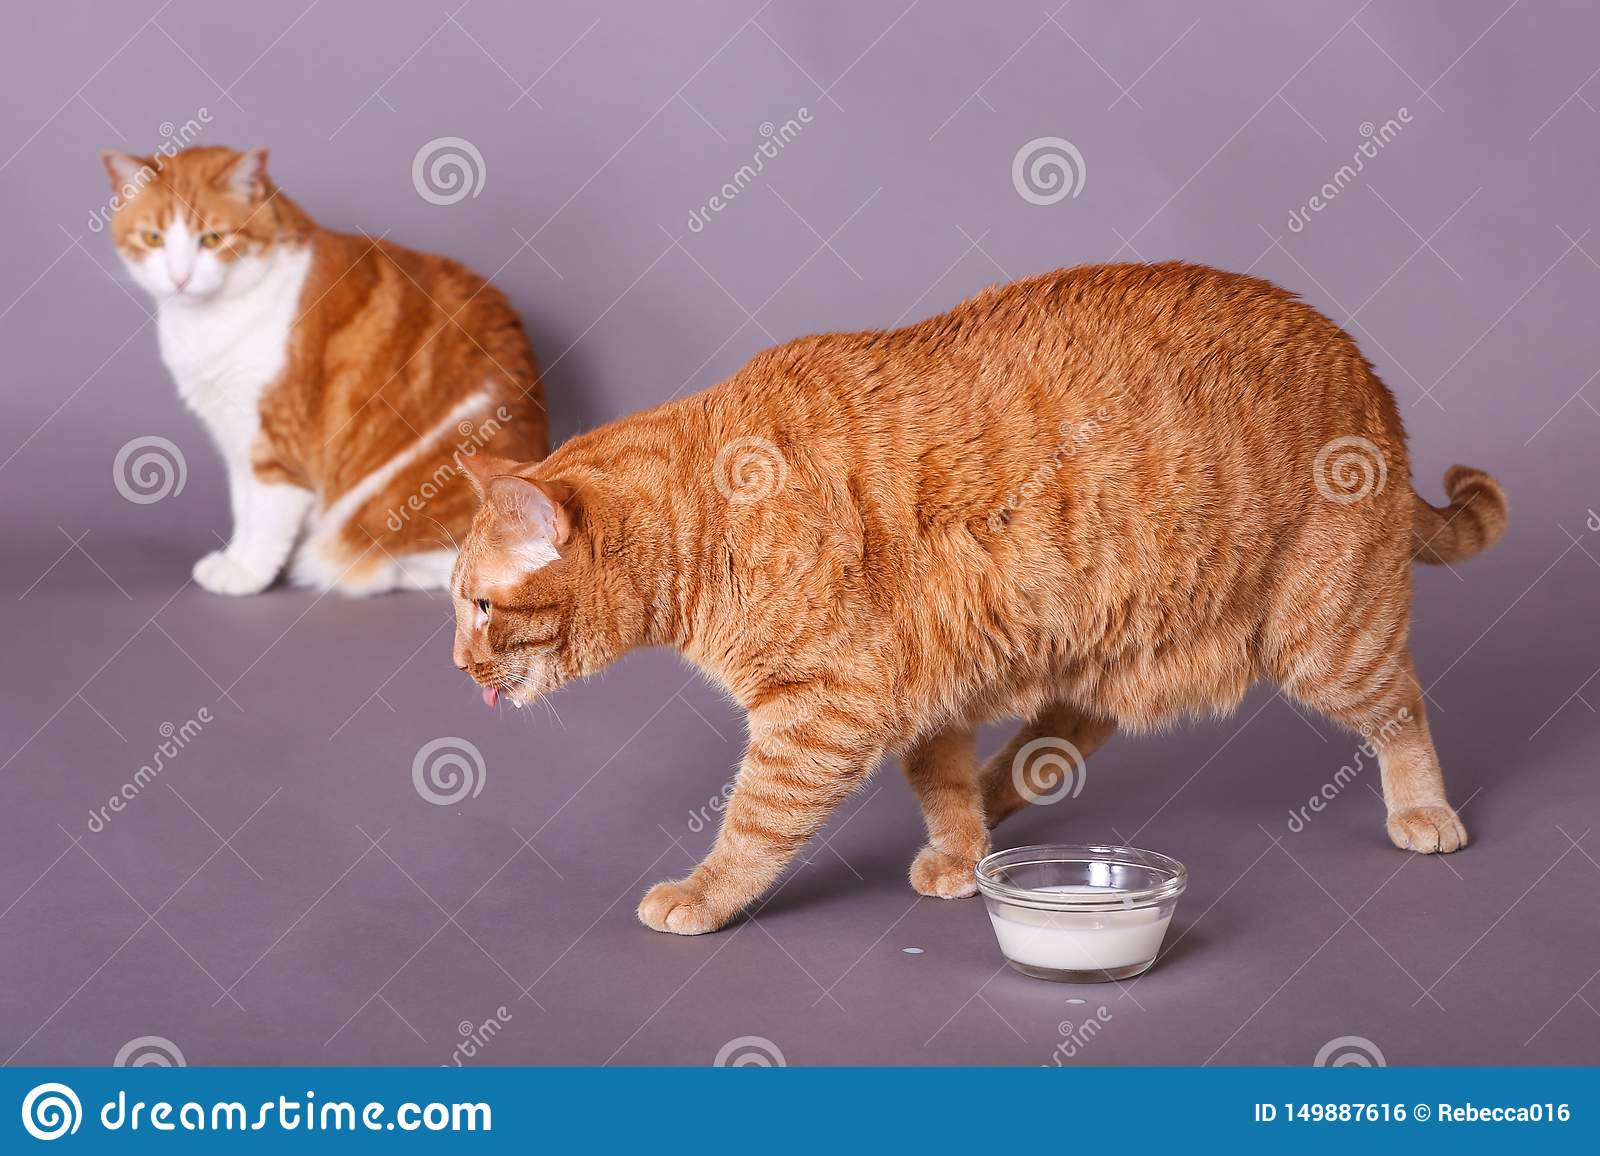 Orange domestic cat walking away from bowl of milk licking lips tabby cat in background